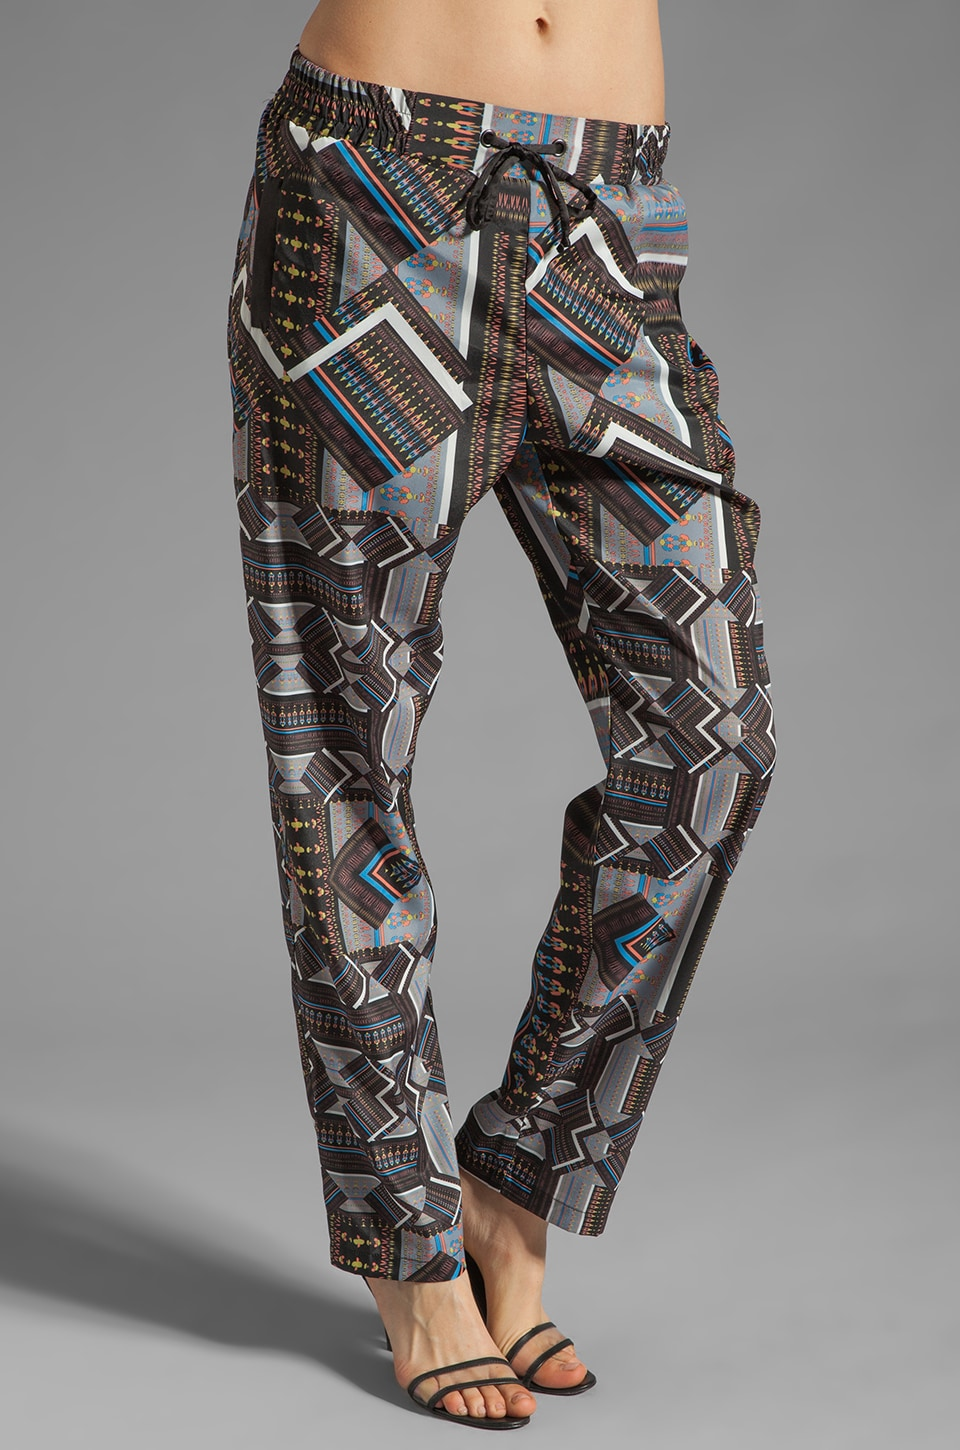 Ladakh Tribal Jigsaw Pants in Multi